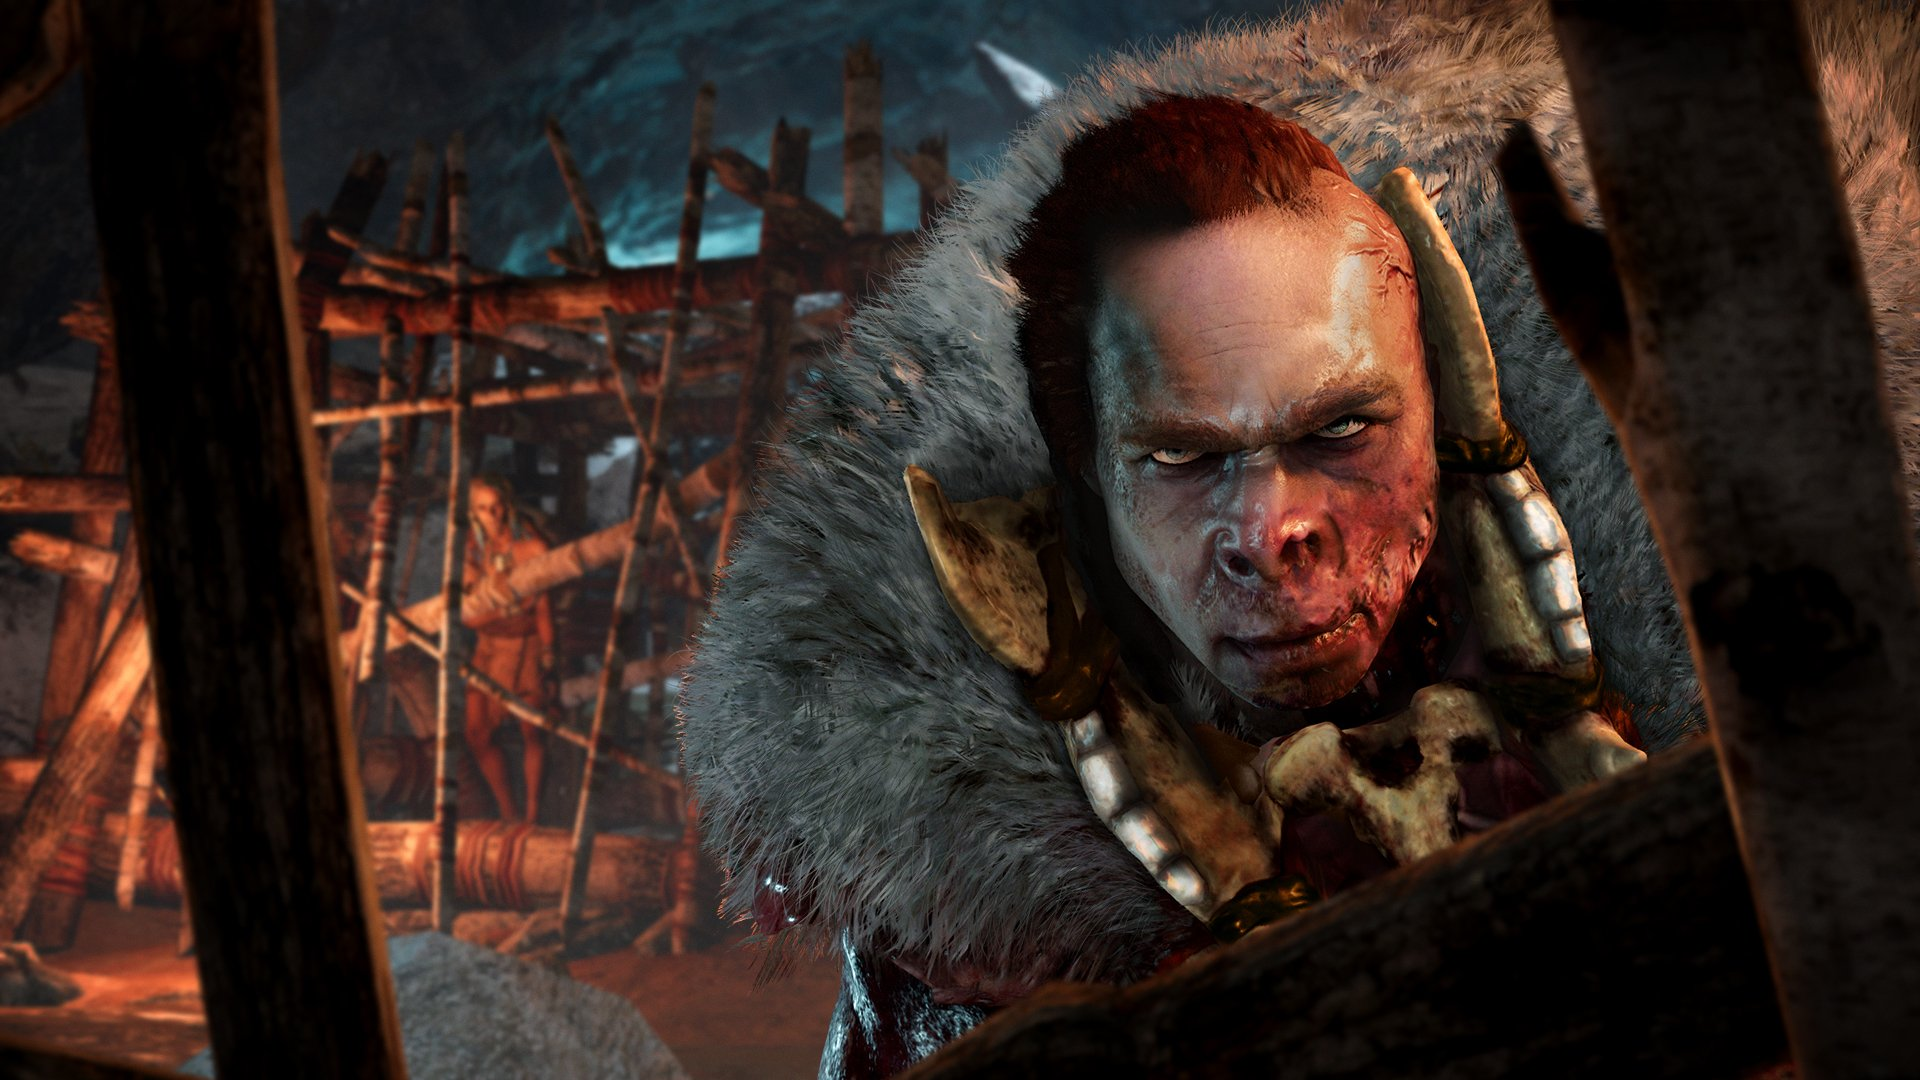 how to bring up map in far cry primal ps4